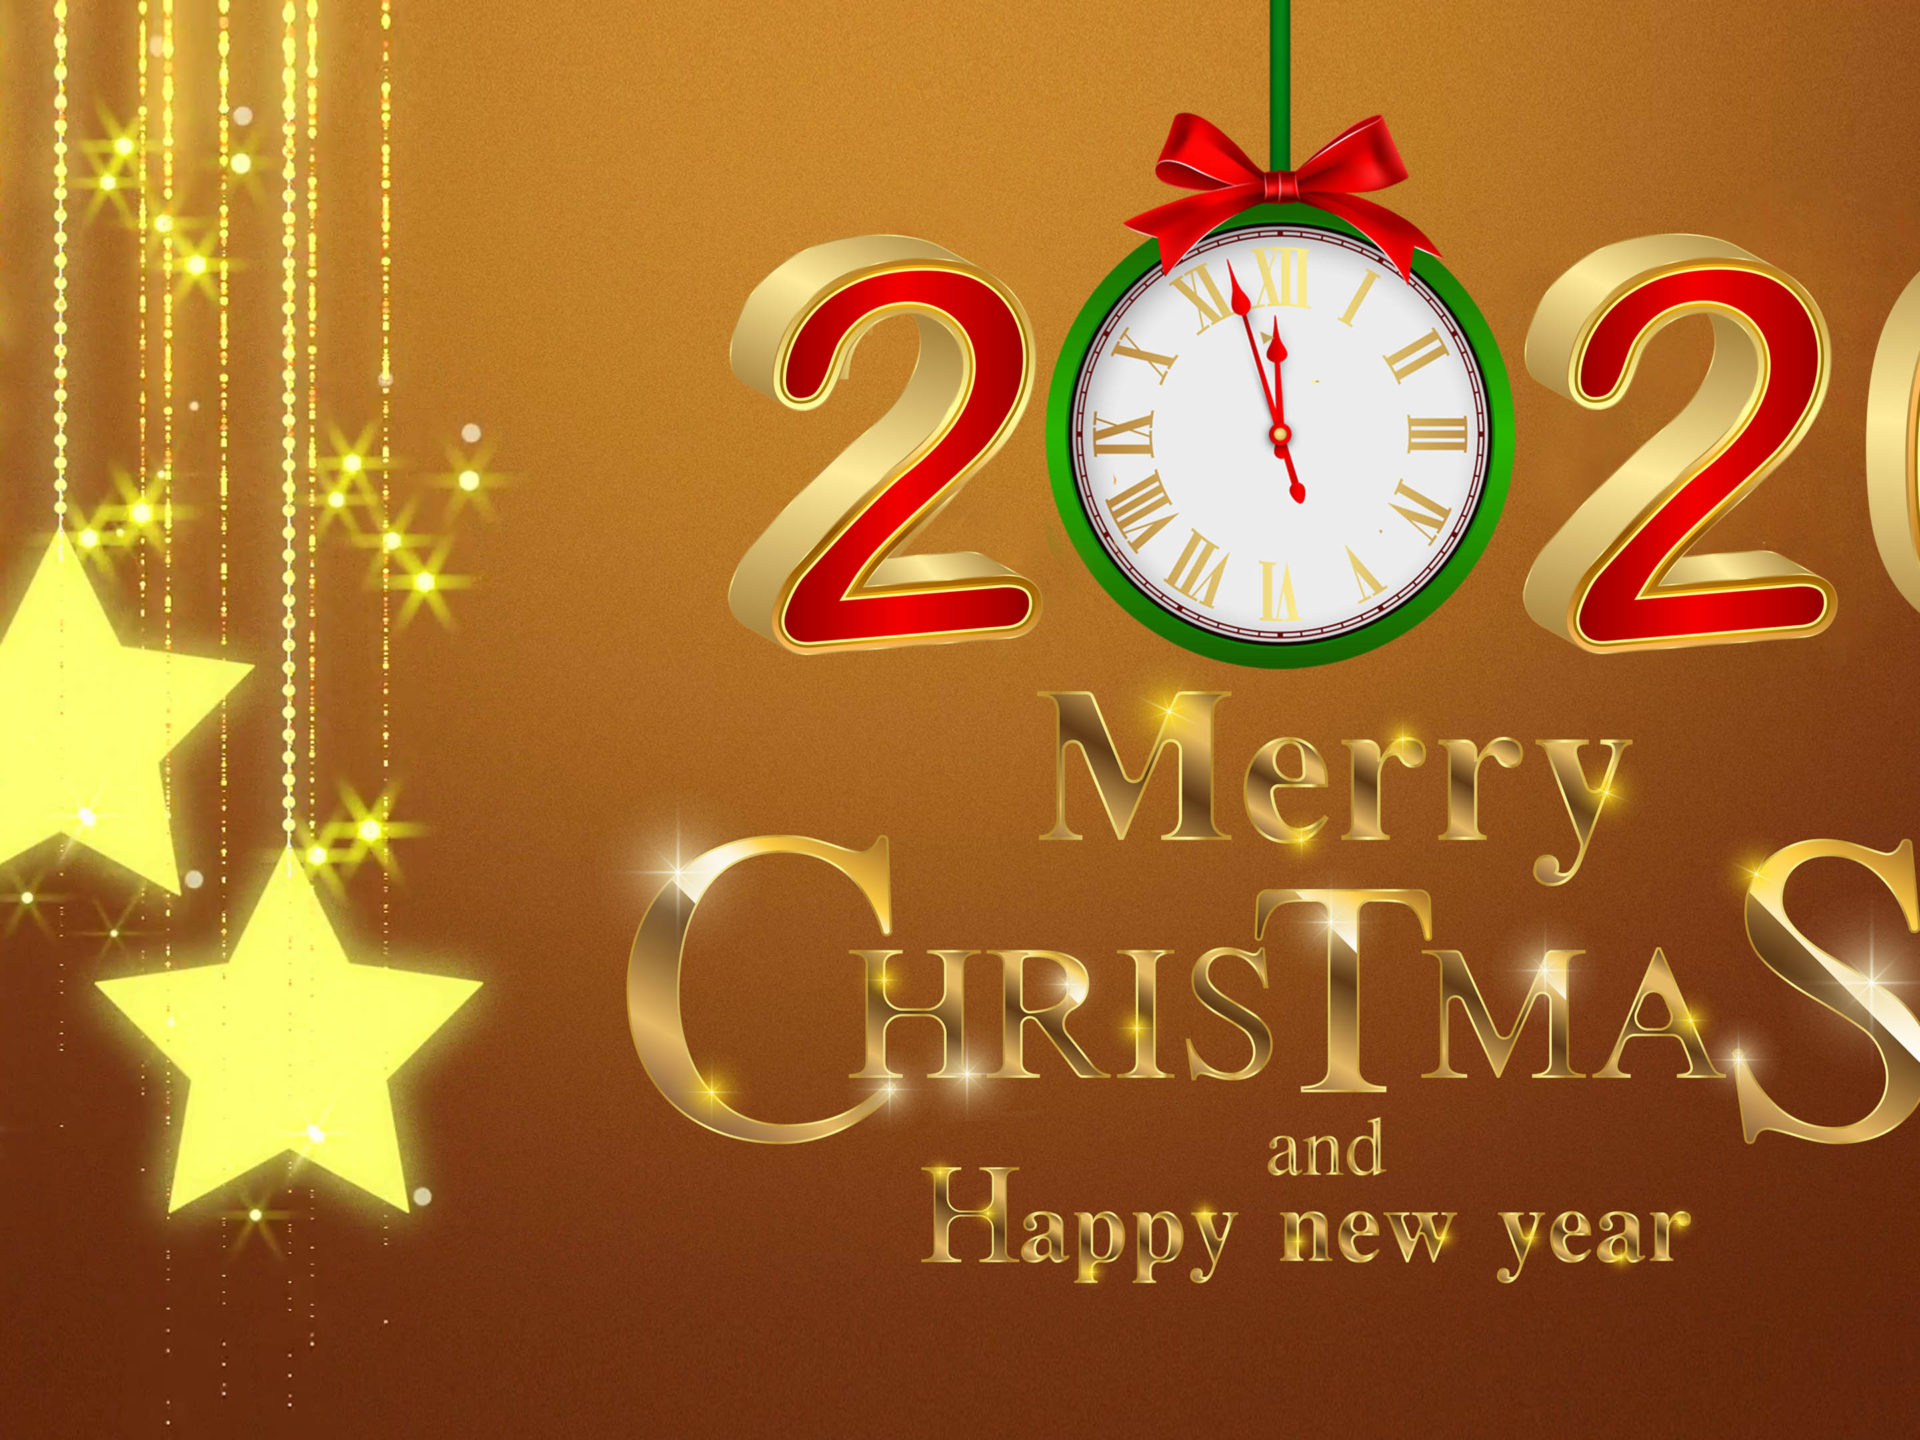 download Merry Christmas And Happy New Year 2020 Gold 4k 1920x1440